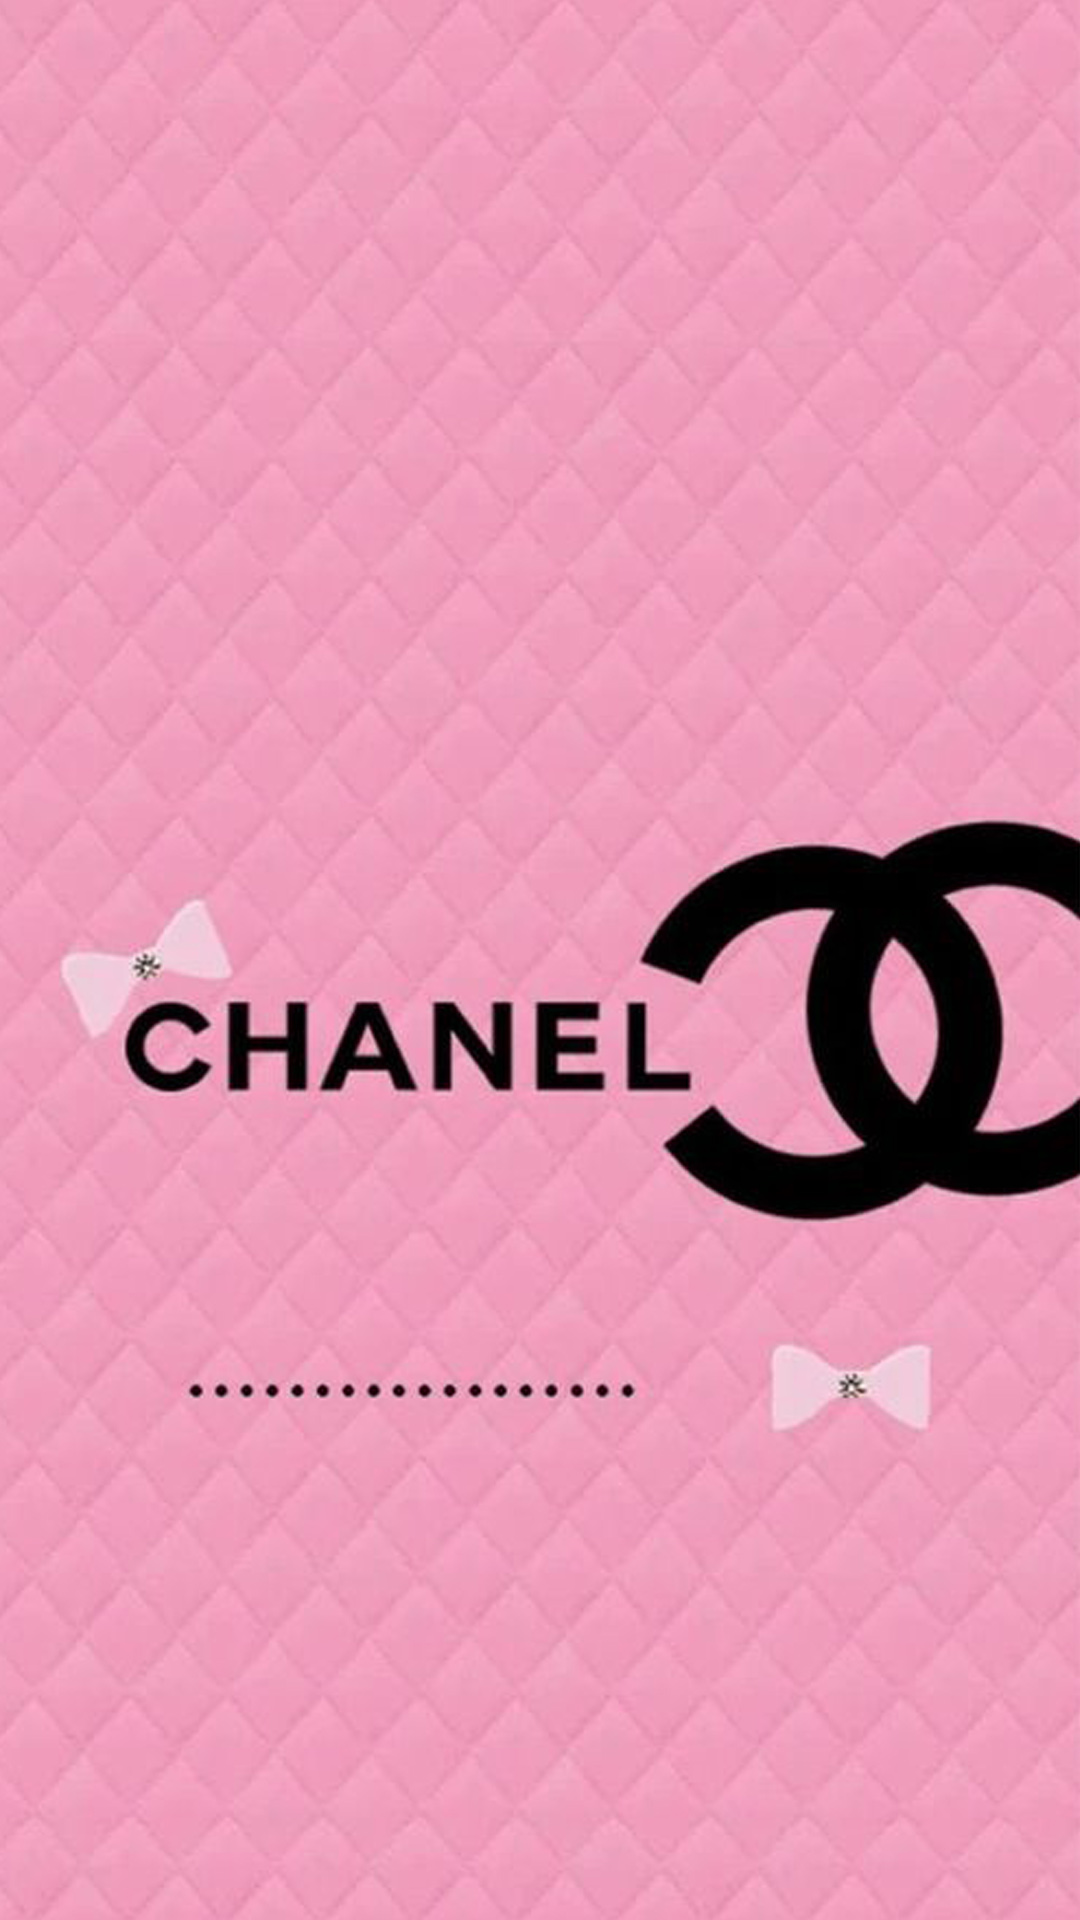 Free download Chanel iPhone Backgrounds